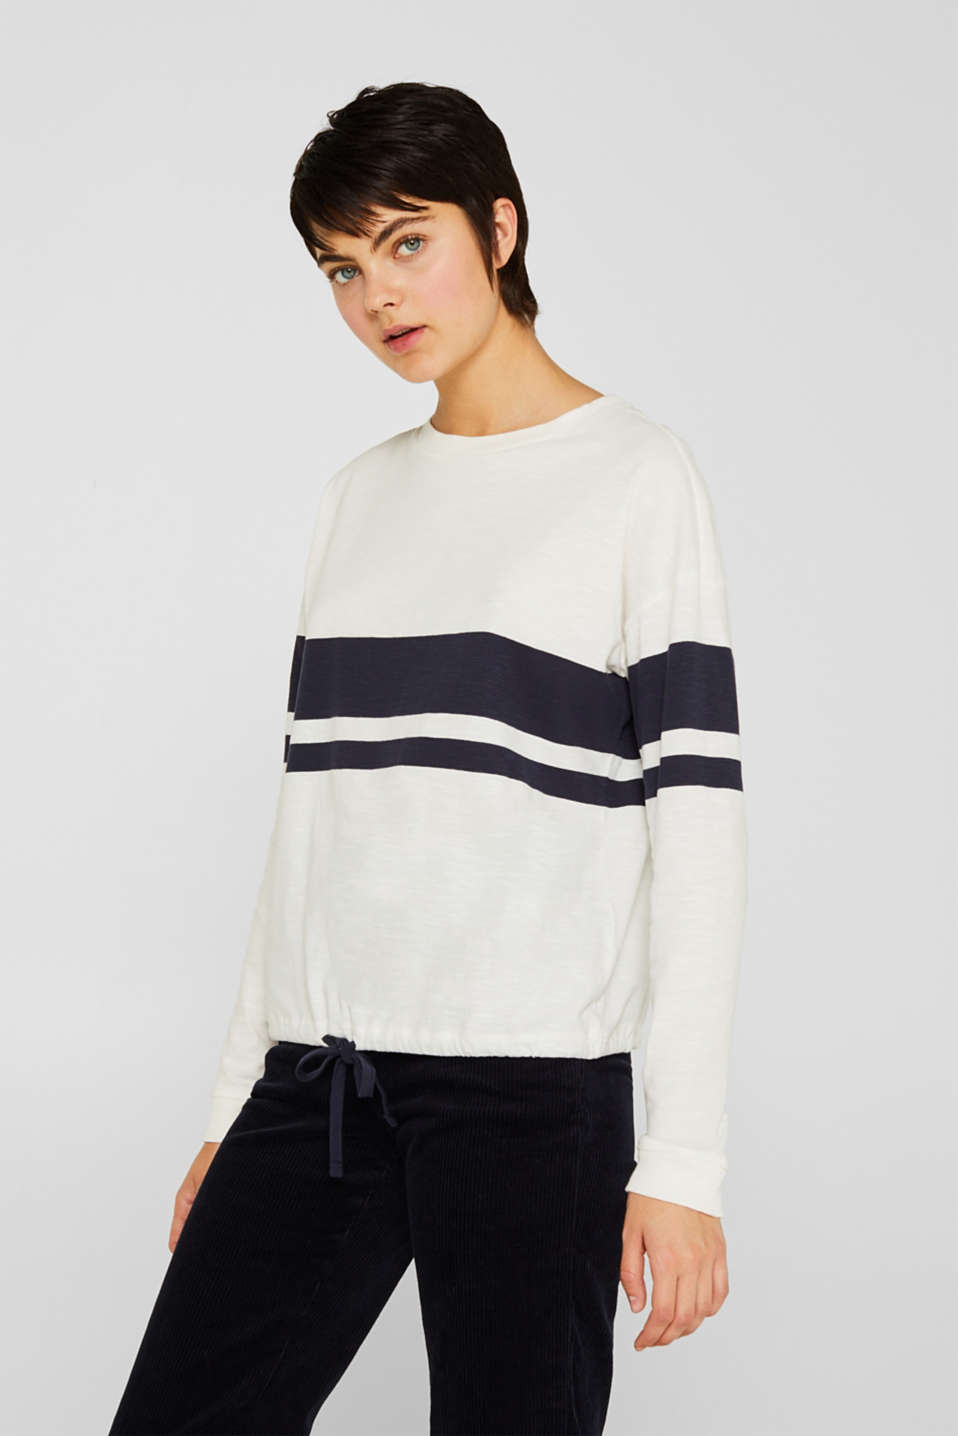 Long sleeve top with block stripes, 100% cotton